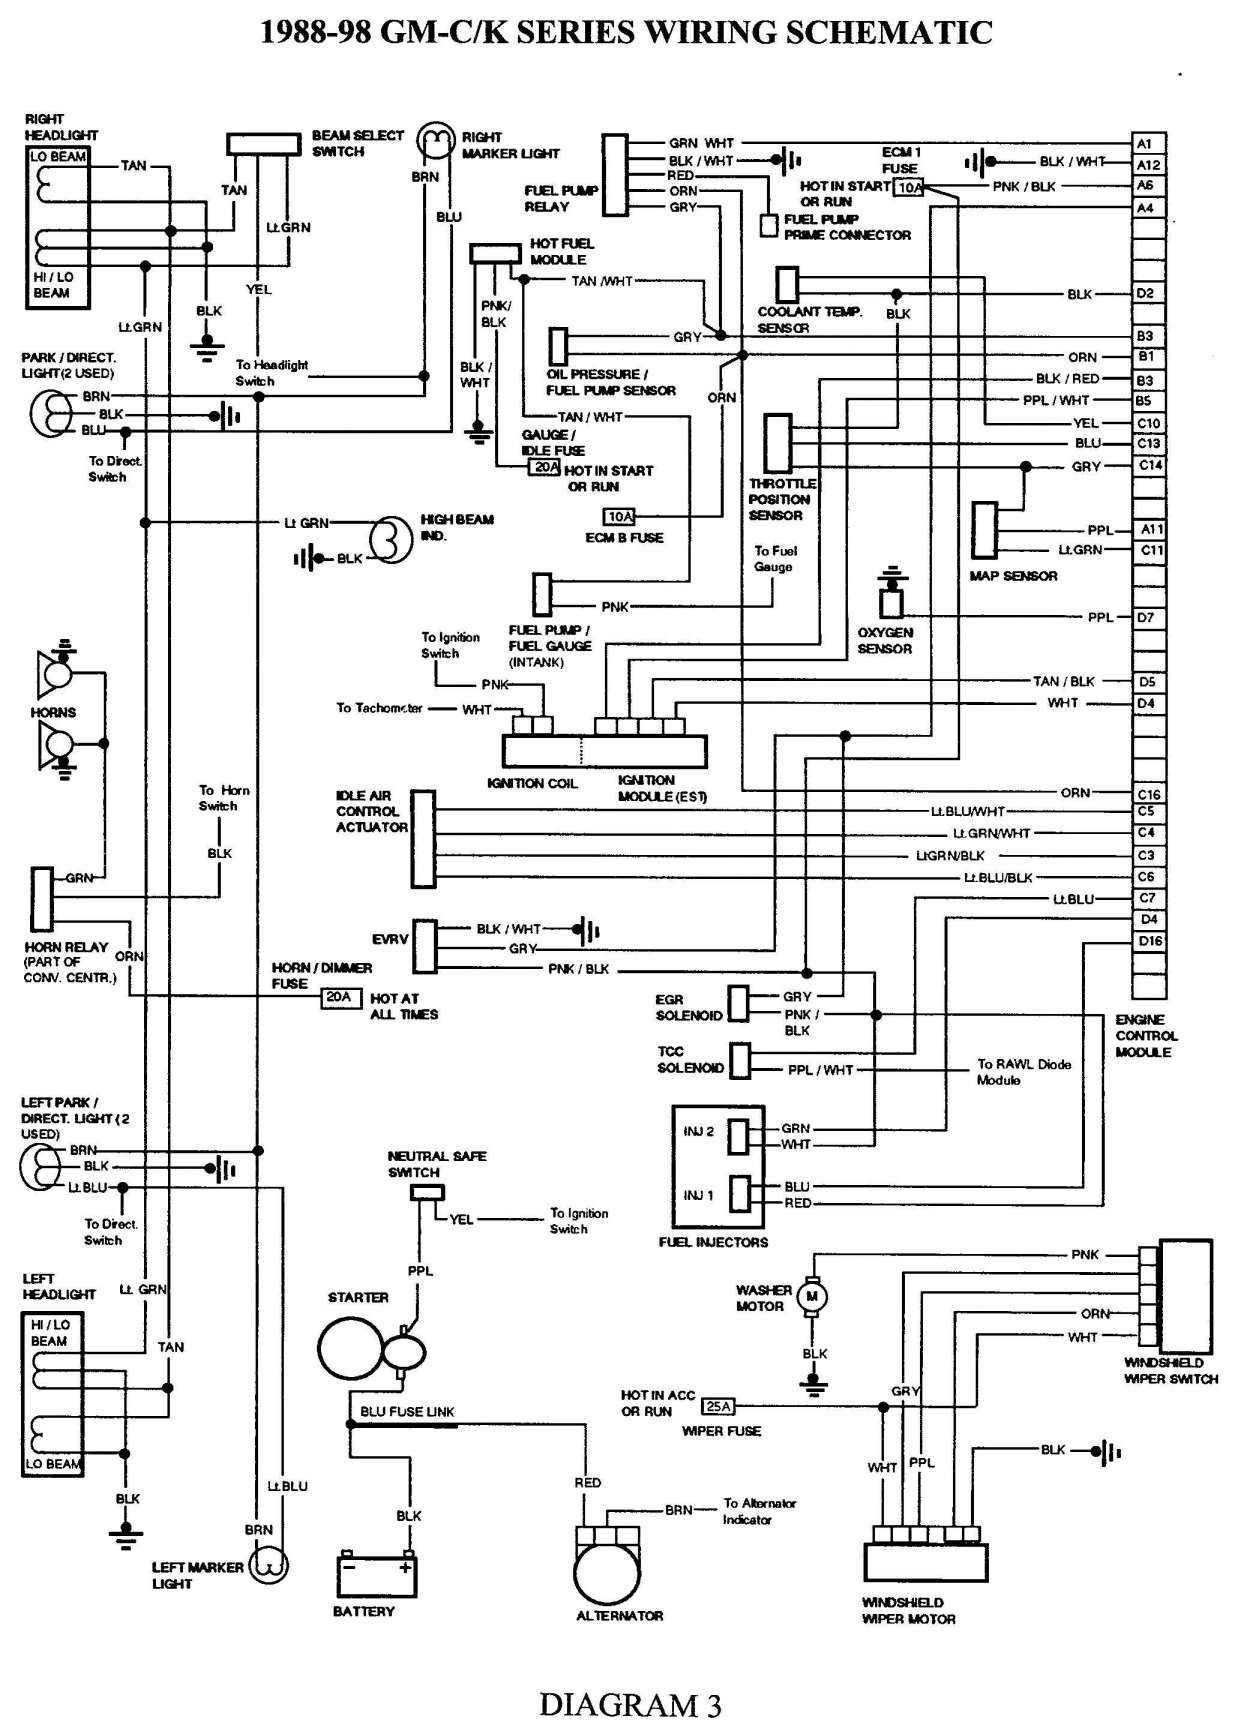 12 1988 Chevy Truck Wiring Diagram Truck Diagram In 2020